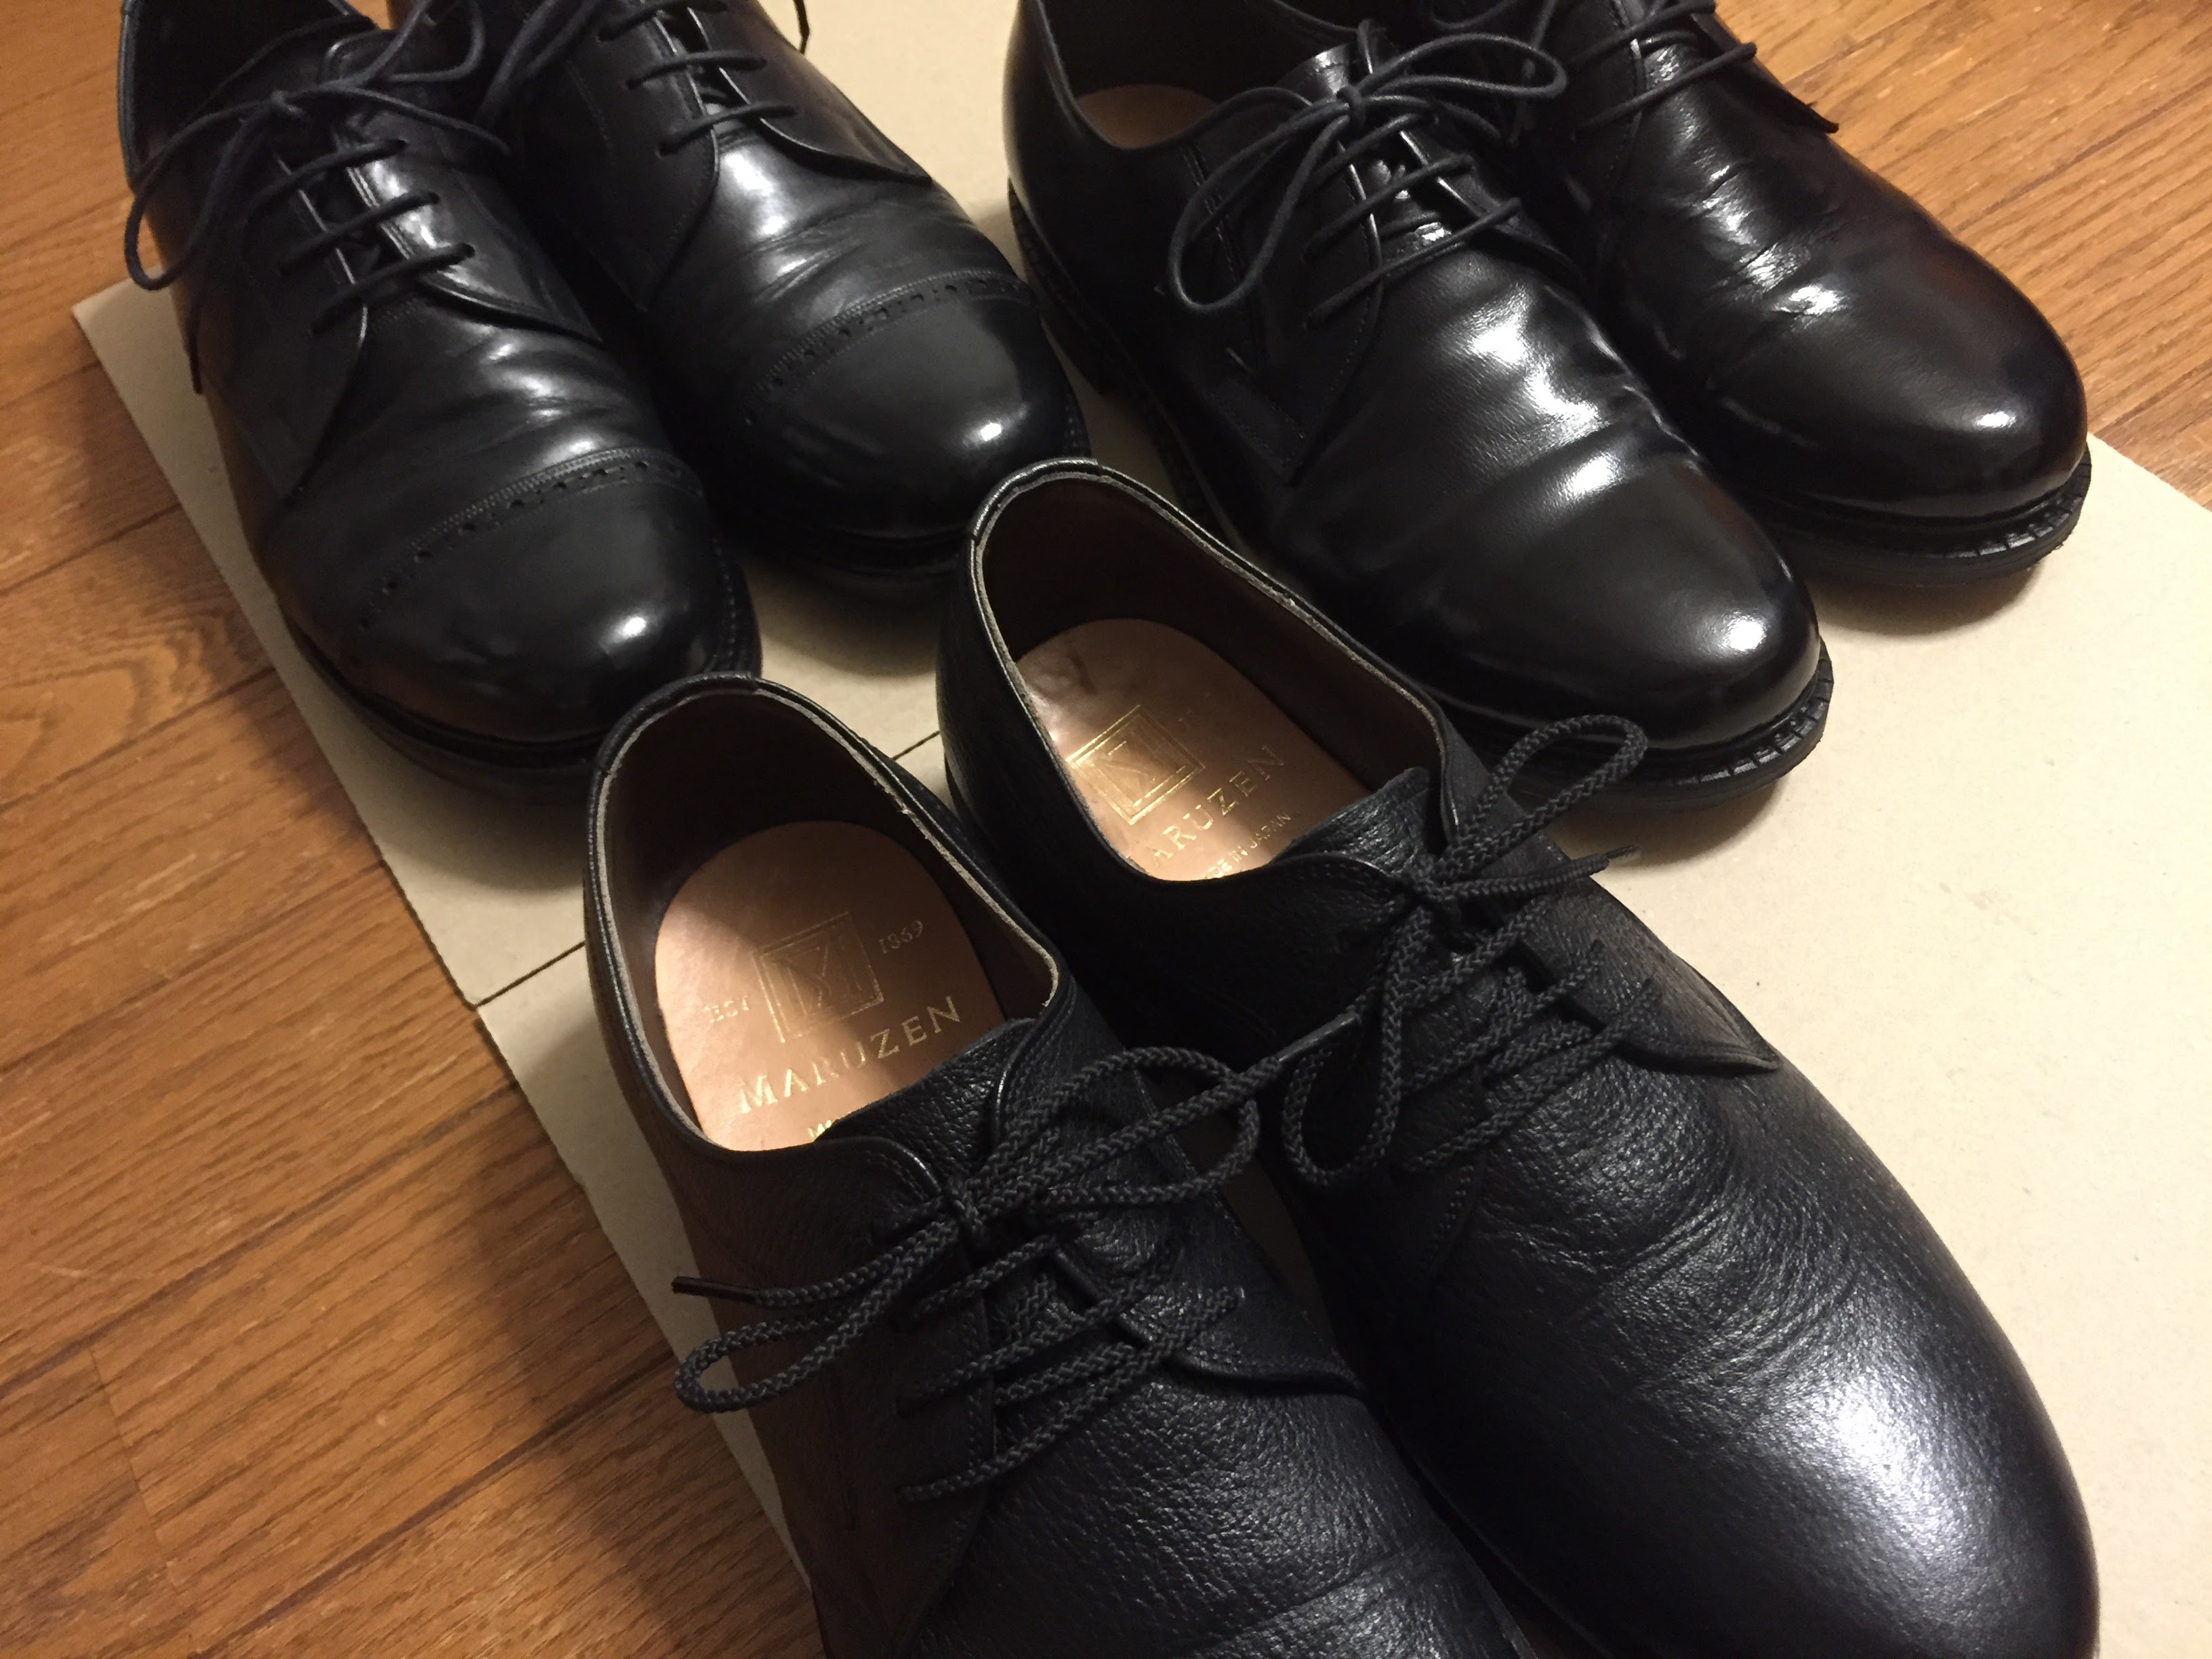 0934-201507_Sanko Seika Rugged Shoes 01